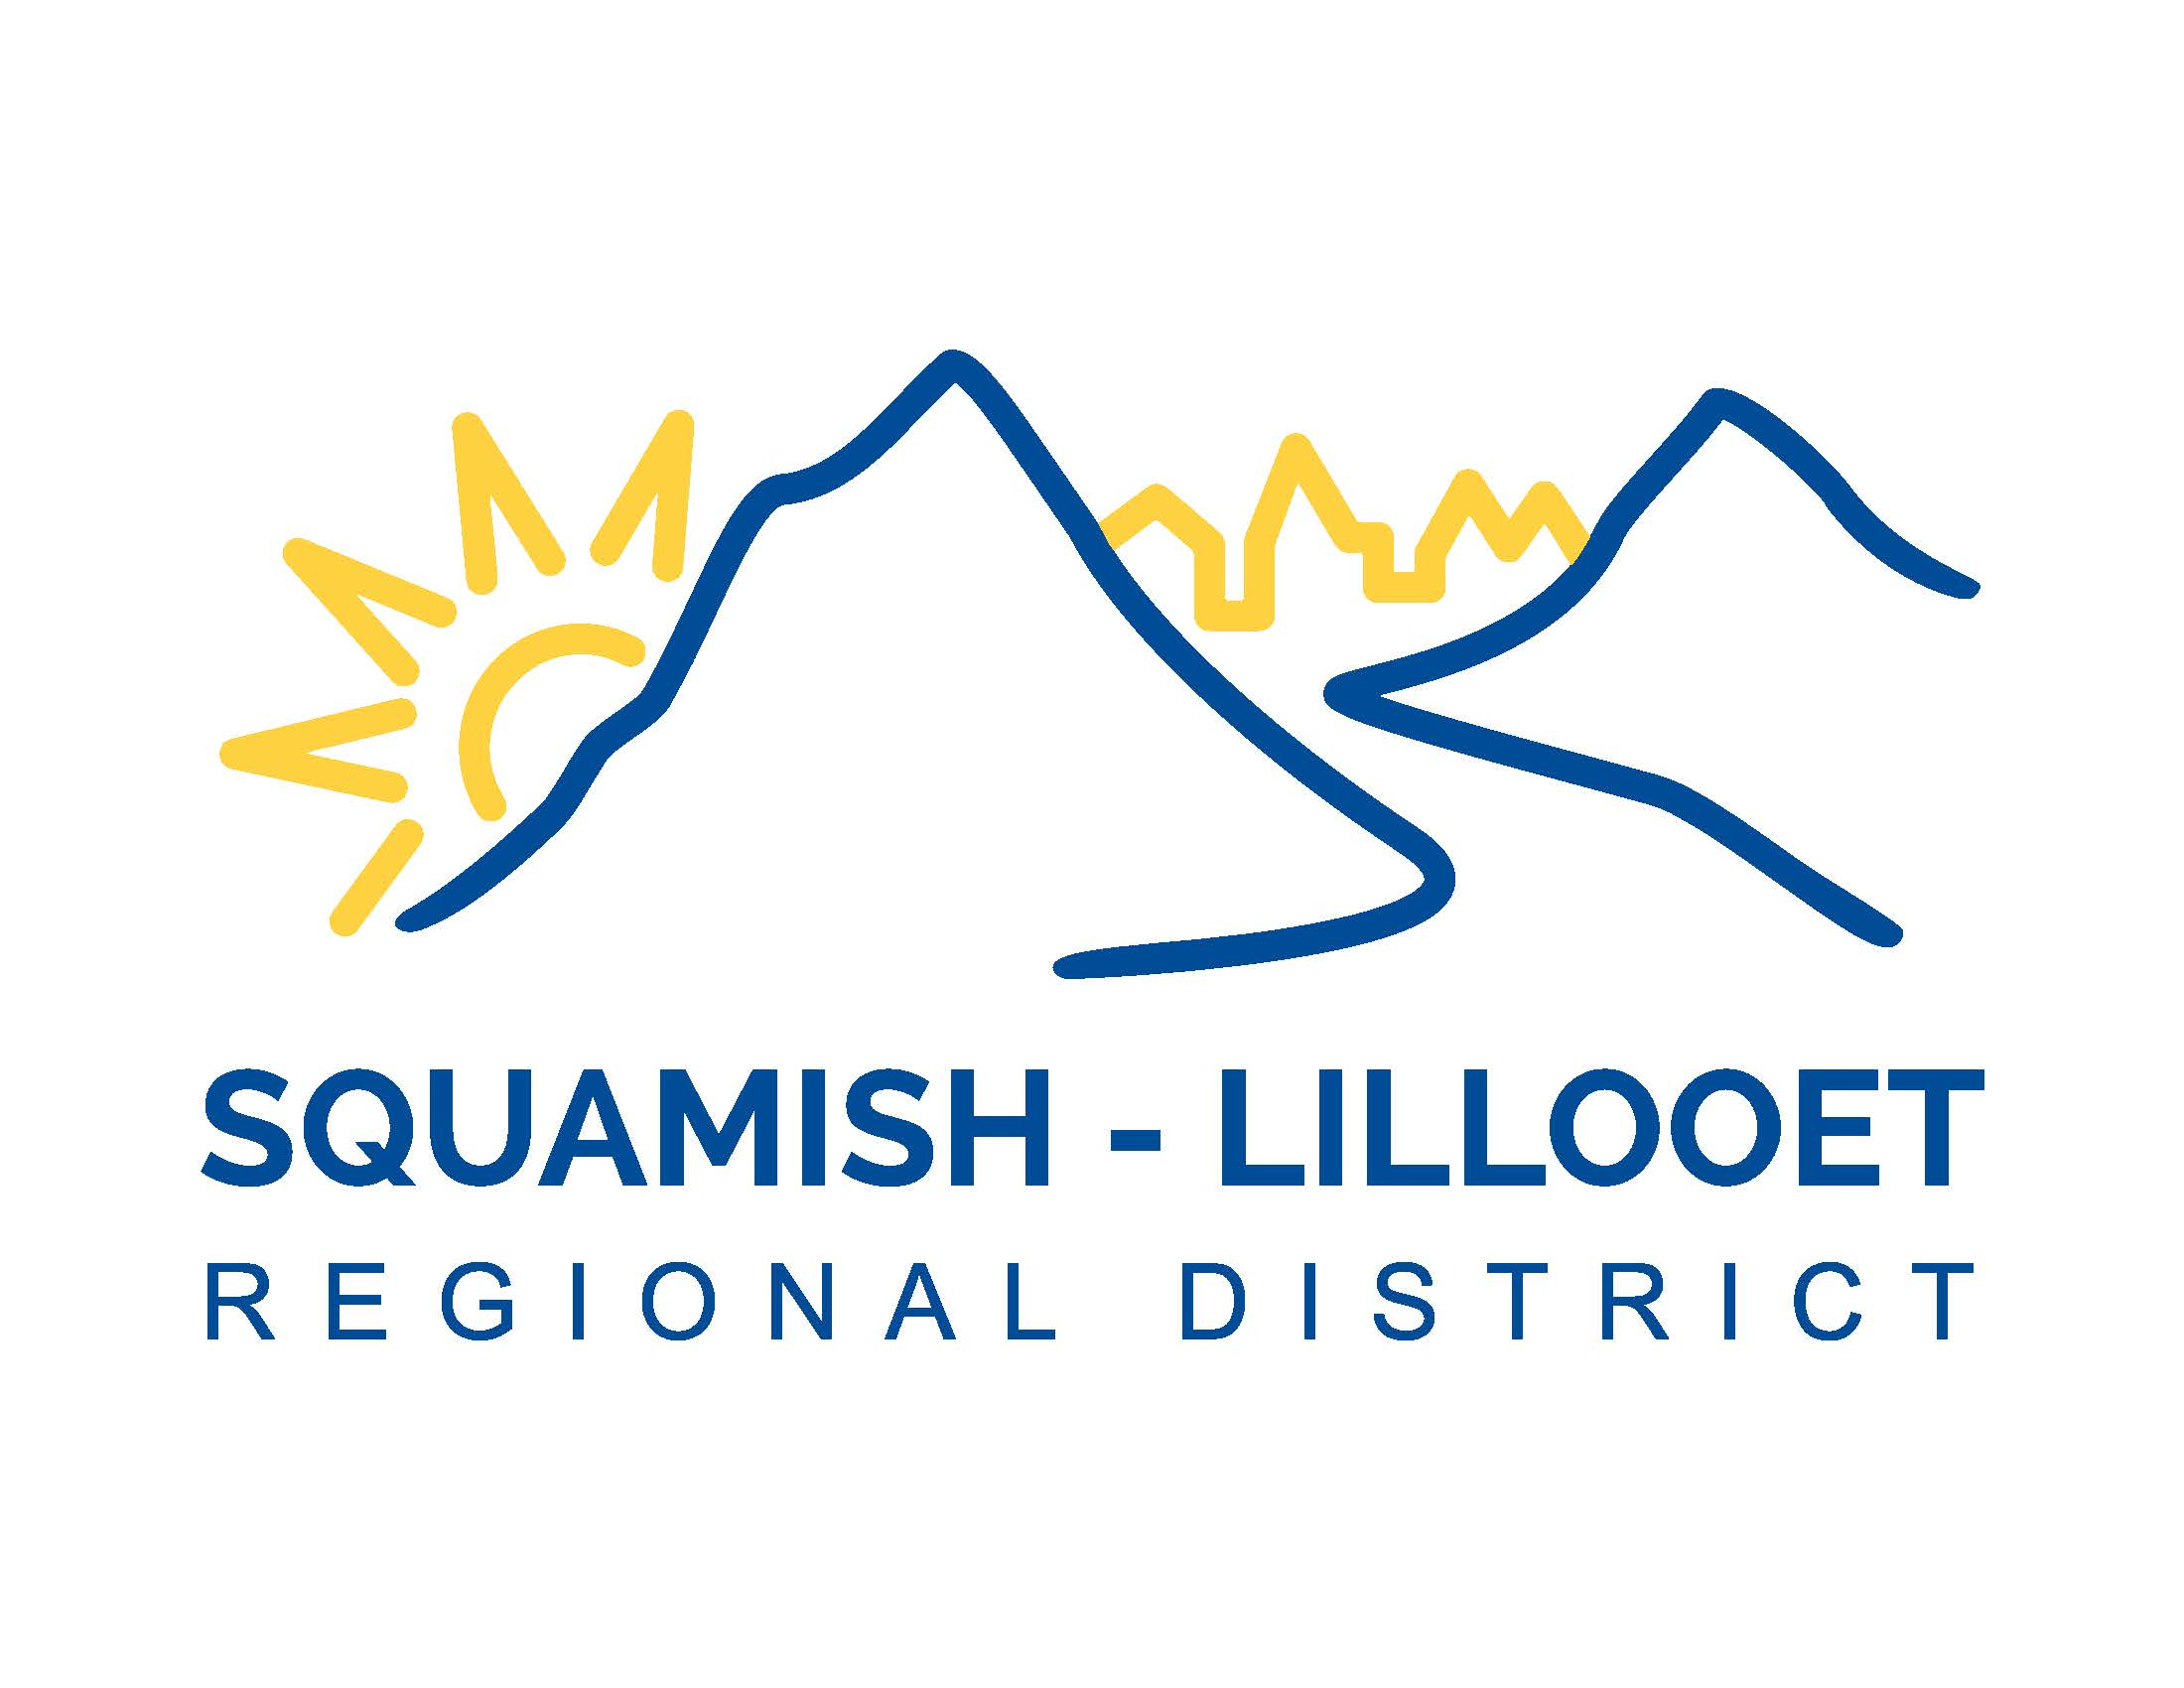 Squamish-Lillooet Regional District